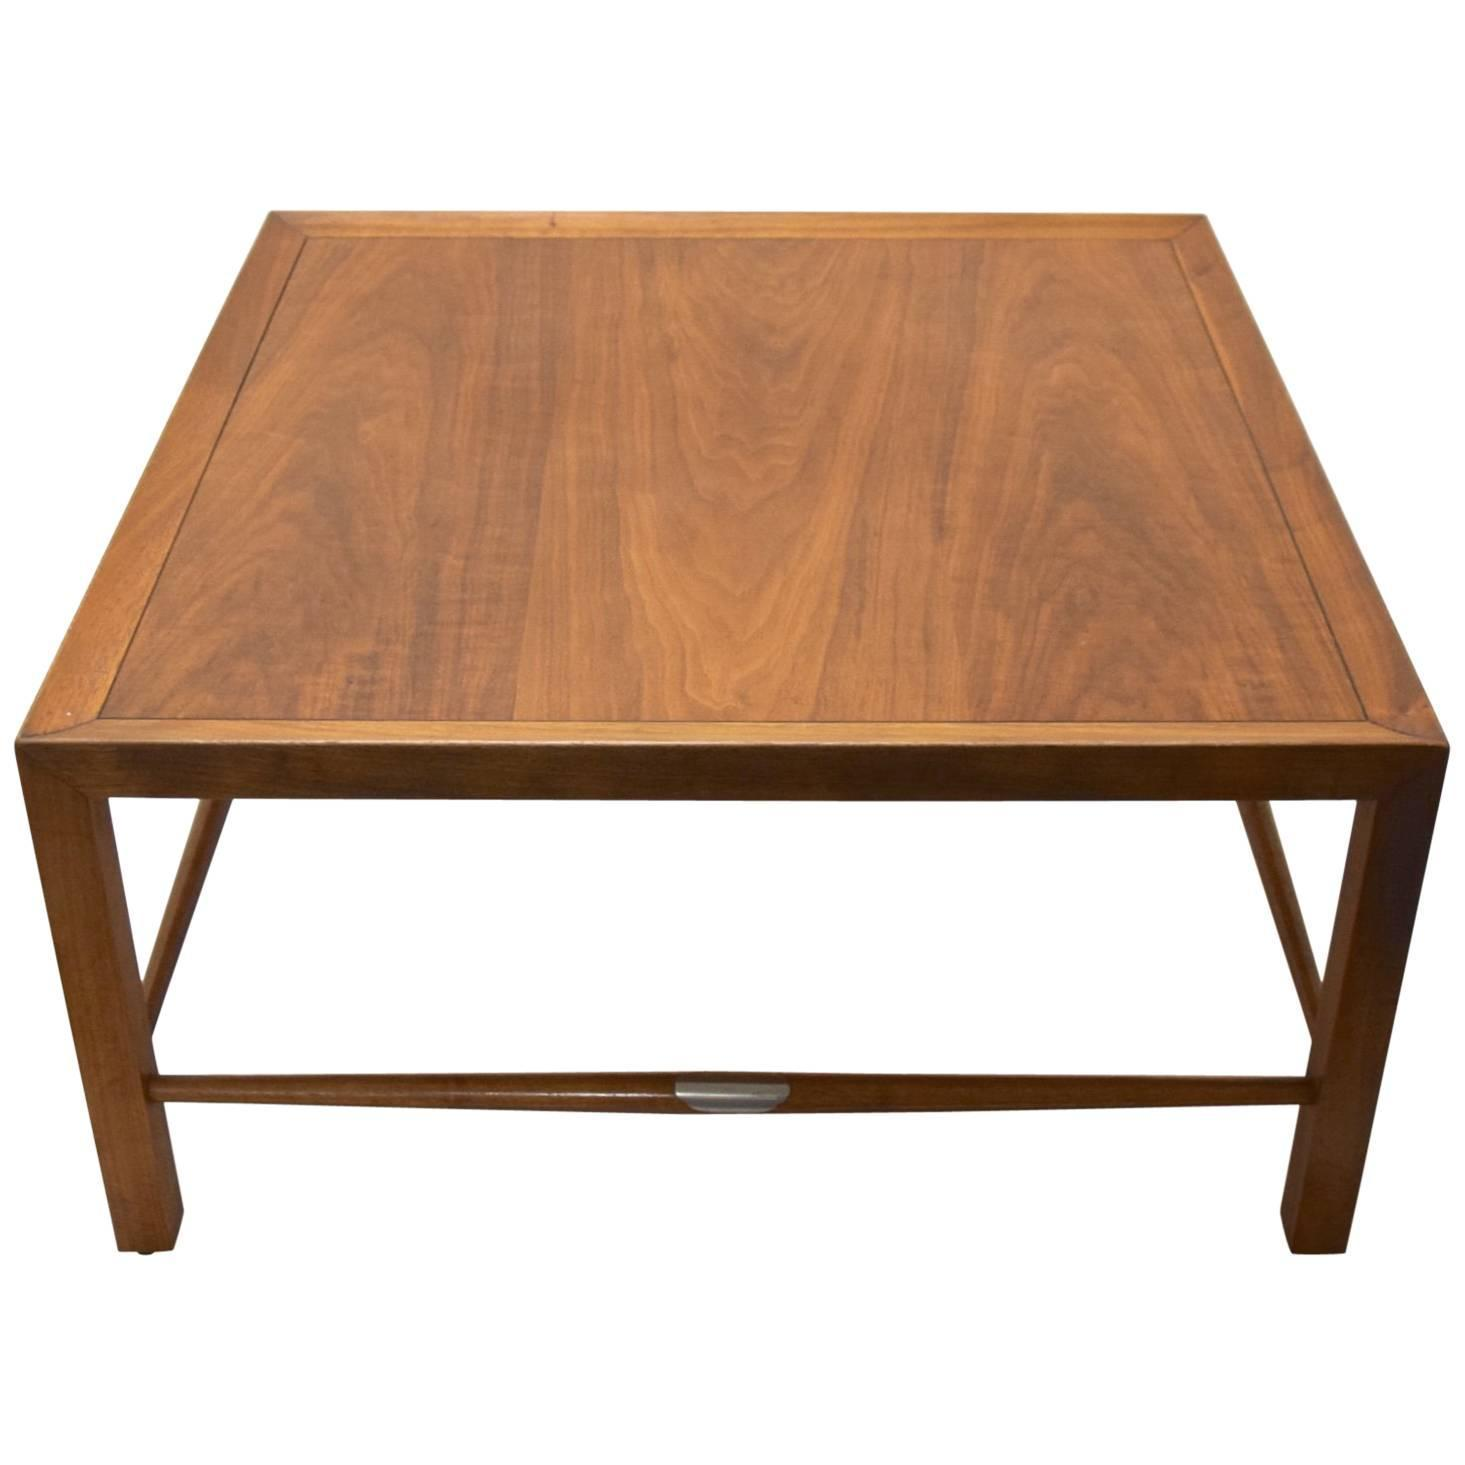 Henredon Coffee and Cocktail Tables 9 For Sale at 1stdibs